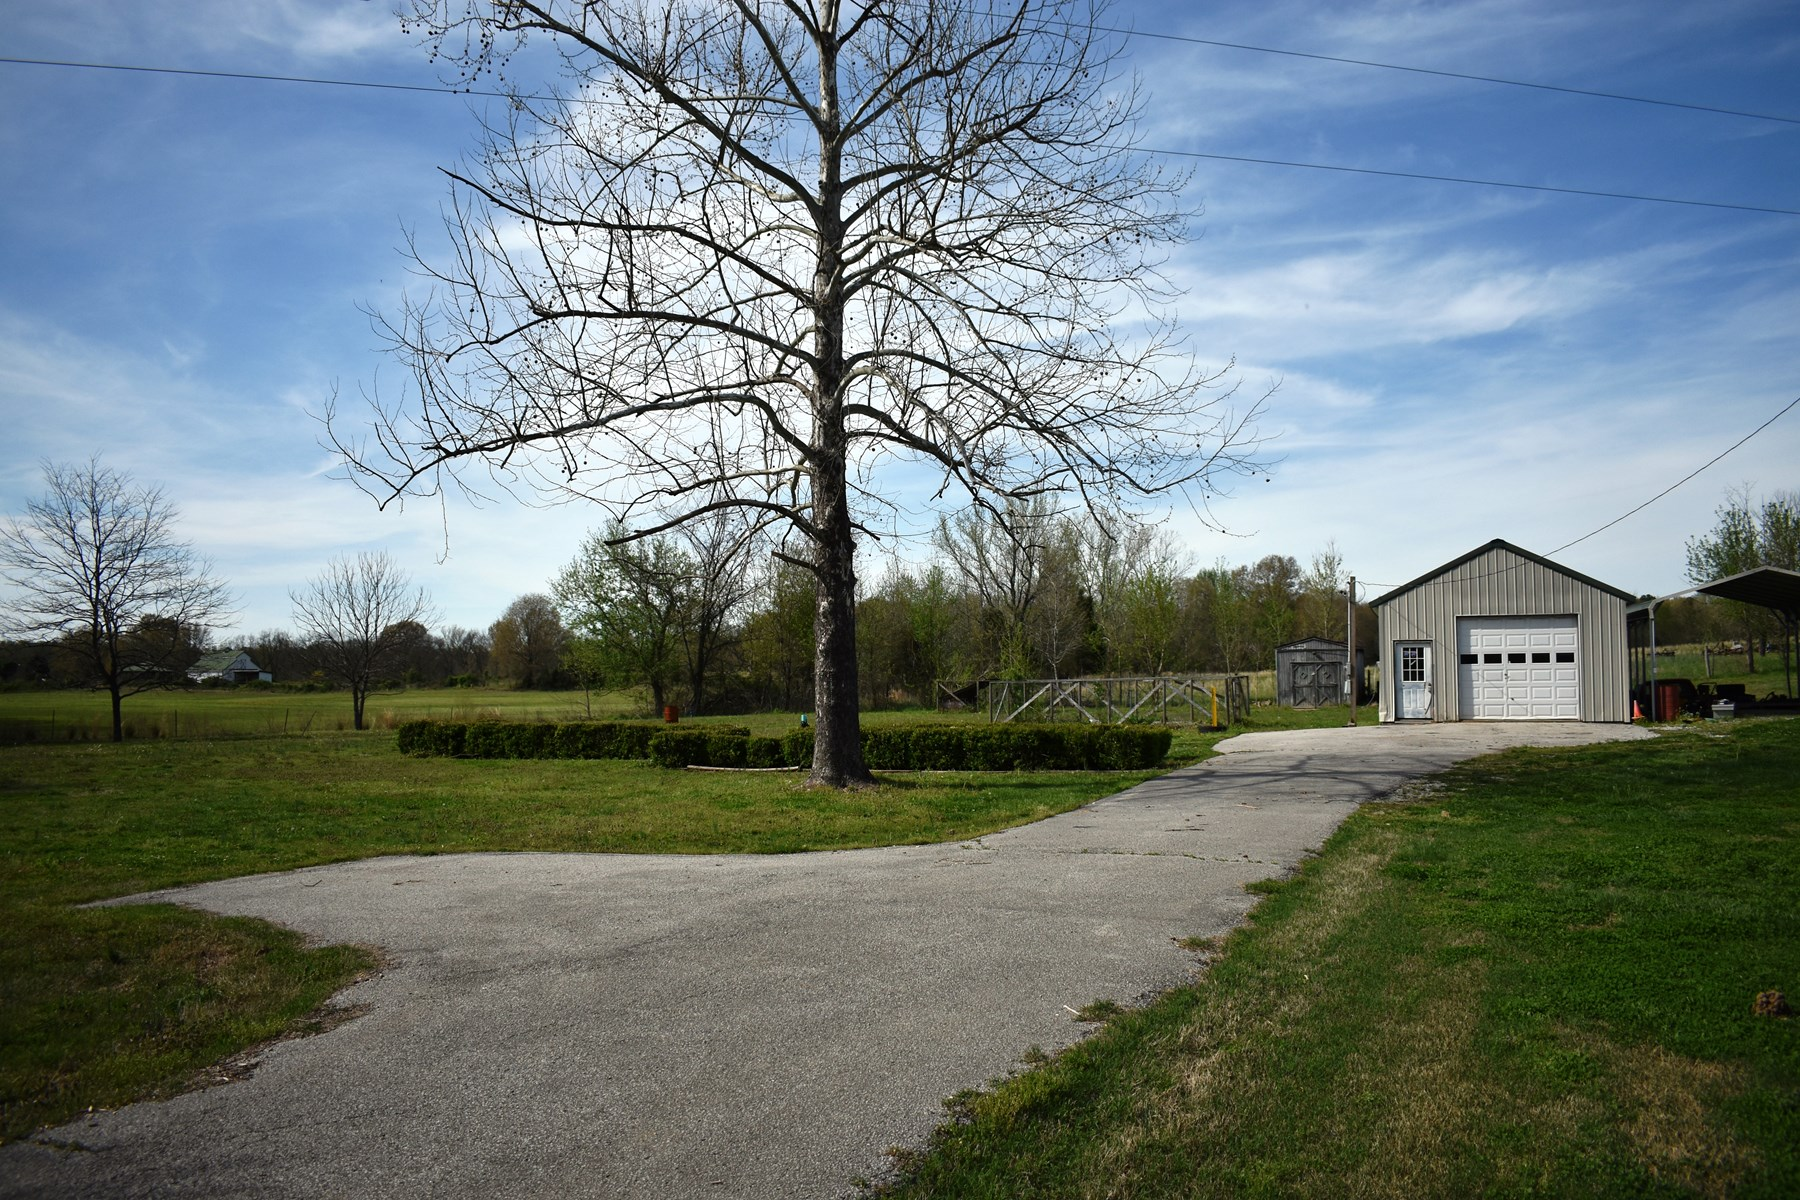 Mobile Home or Building Lot for Sale - Water & Septic & Shop